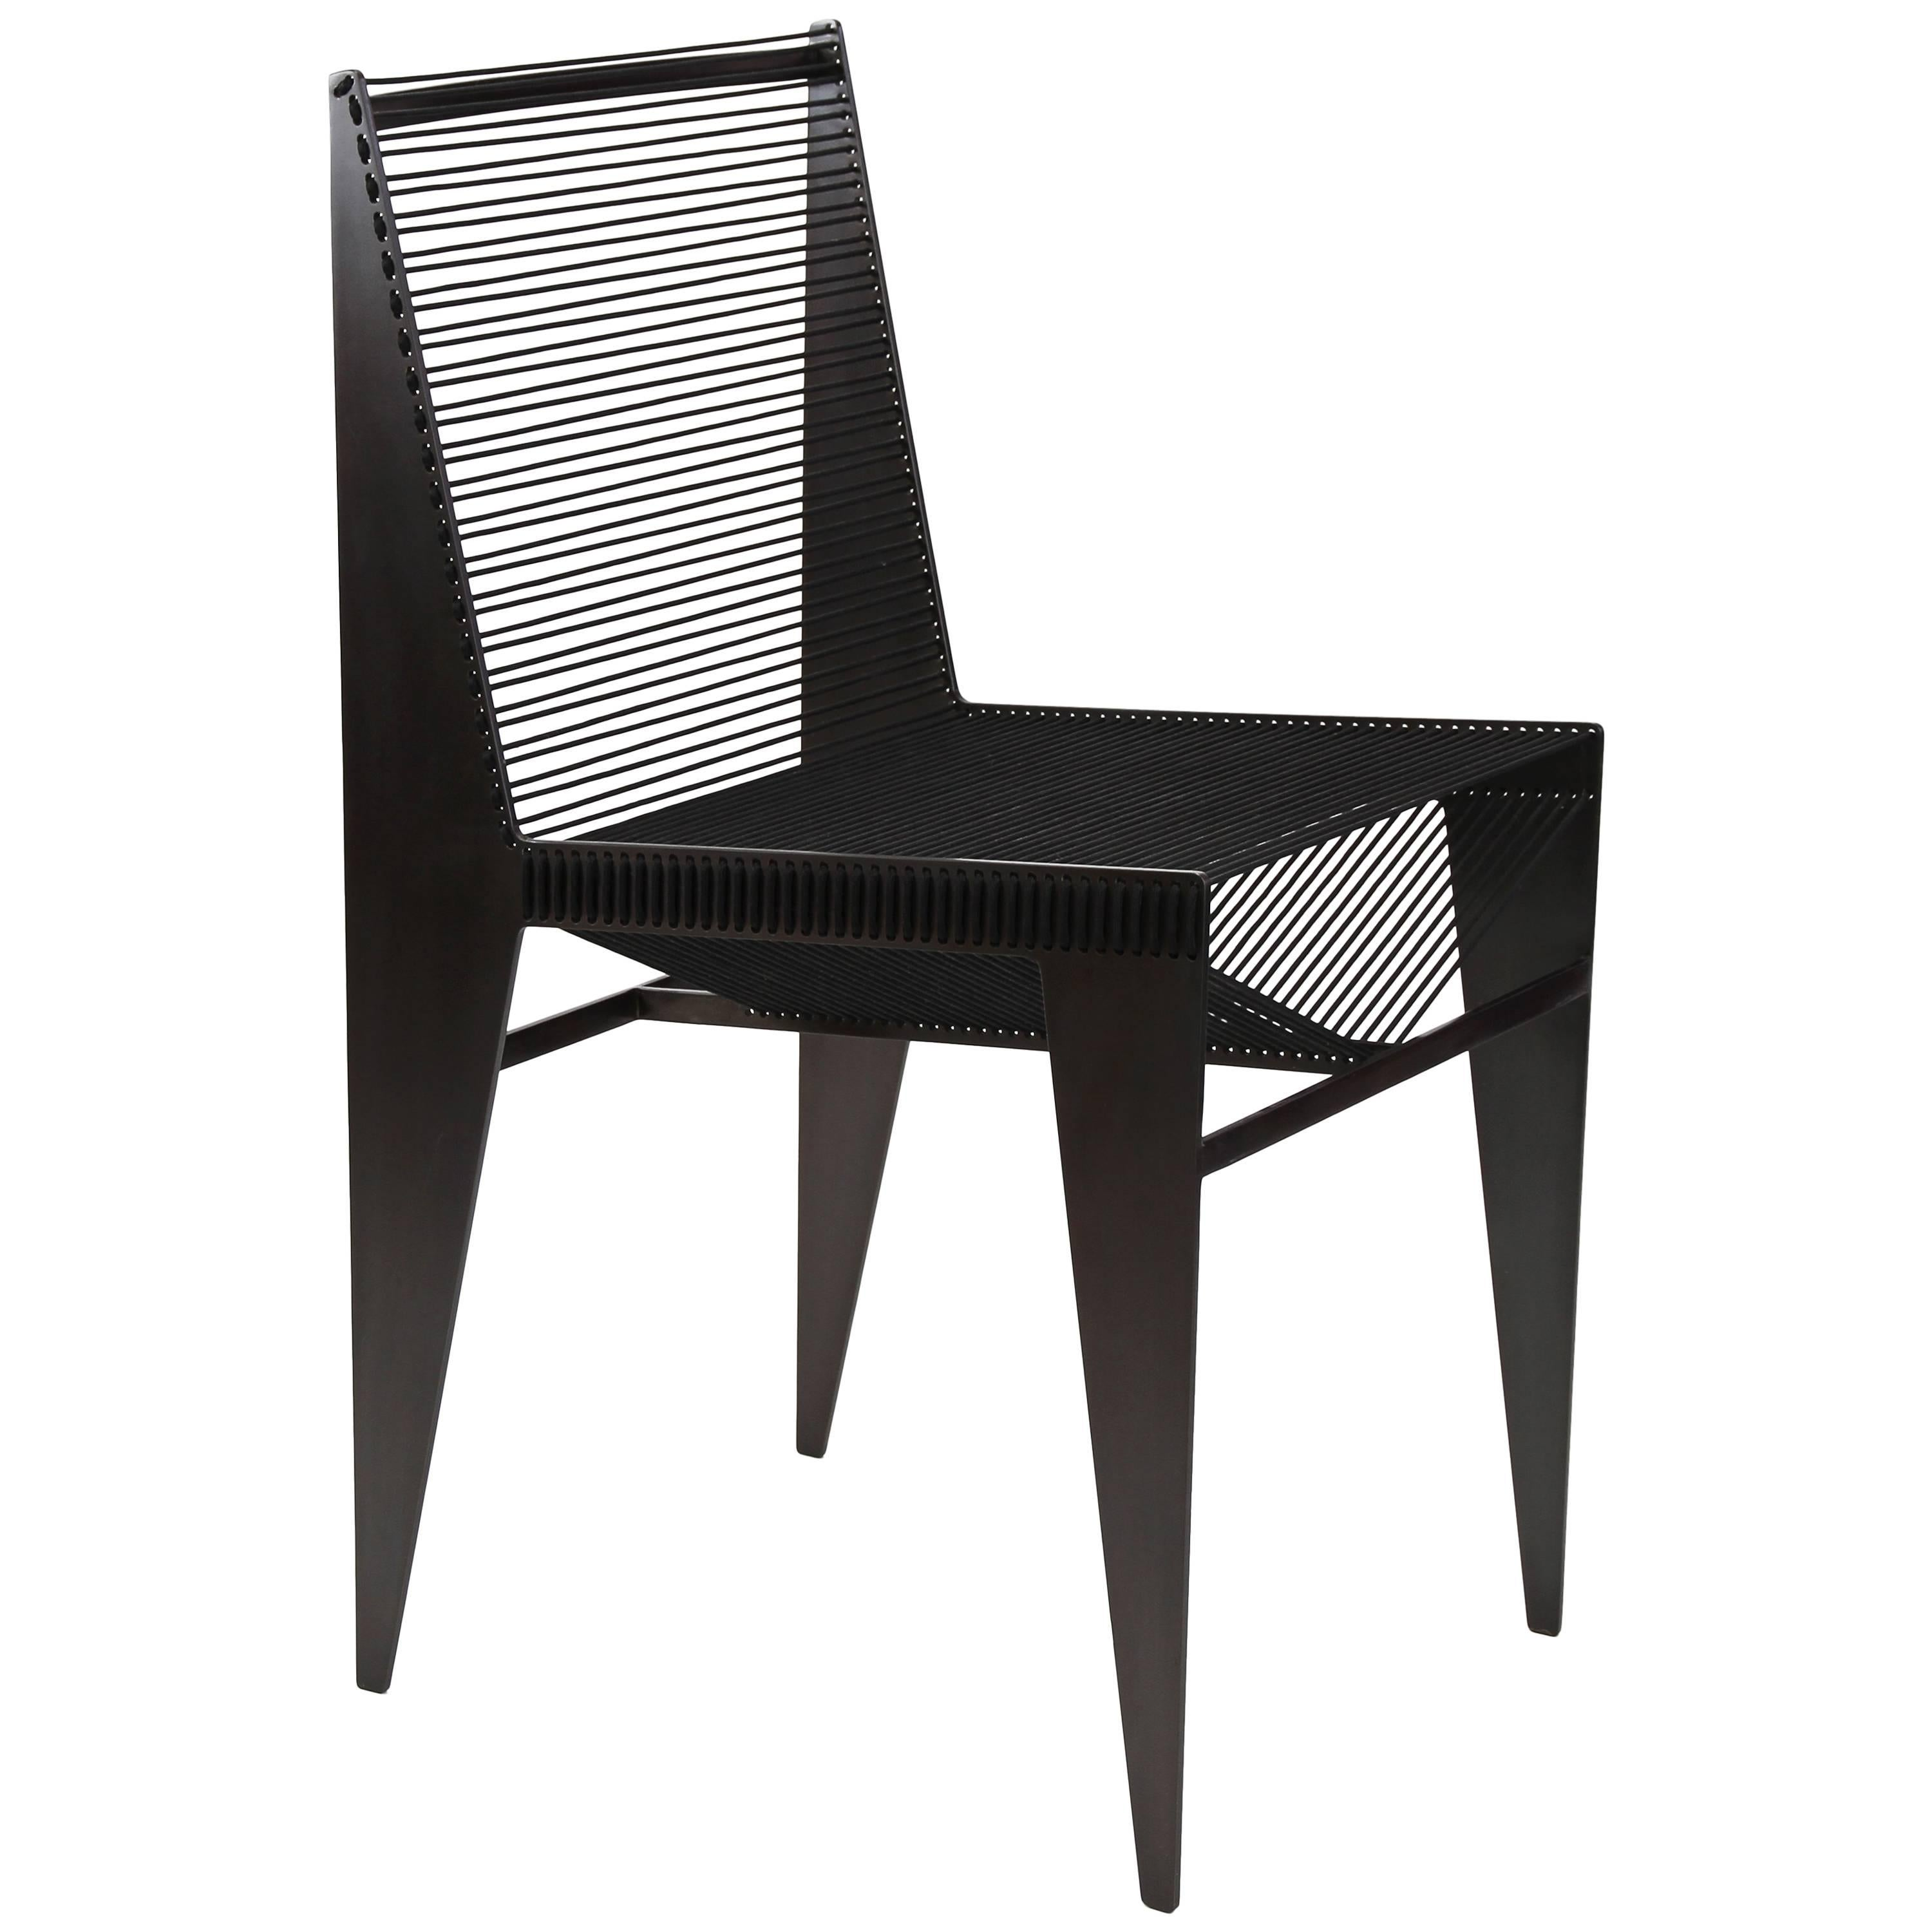 ICON Chair, 2020, powder coated steel & rope by Christopher Kreiling Studio